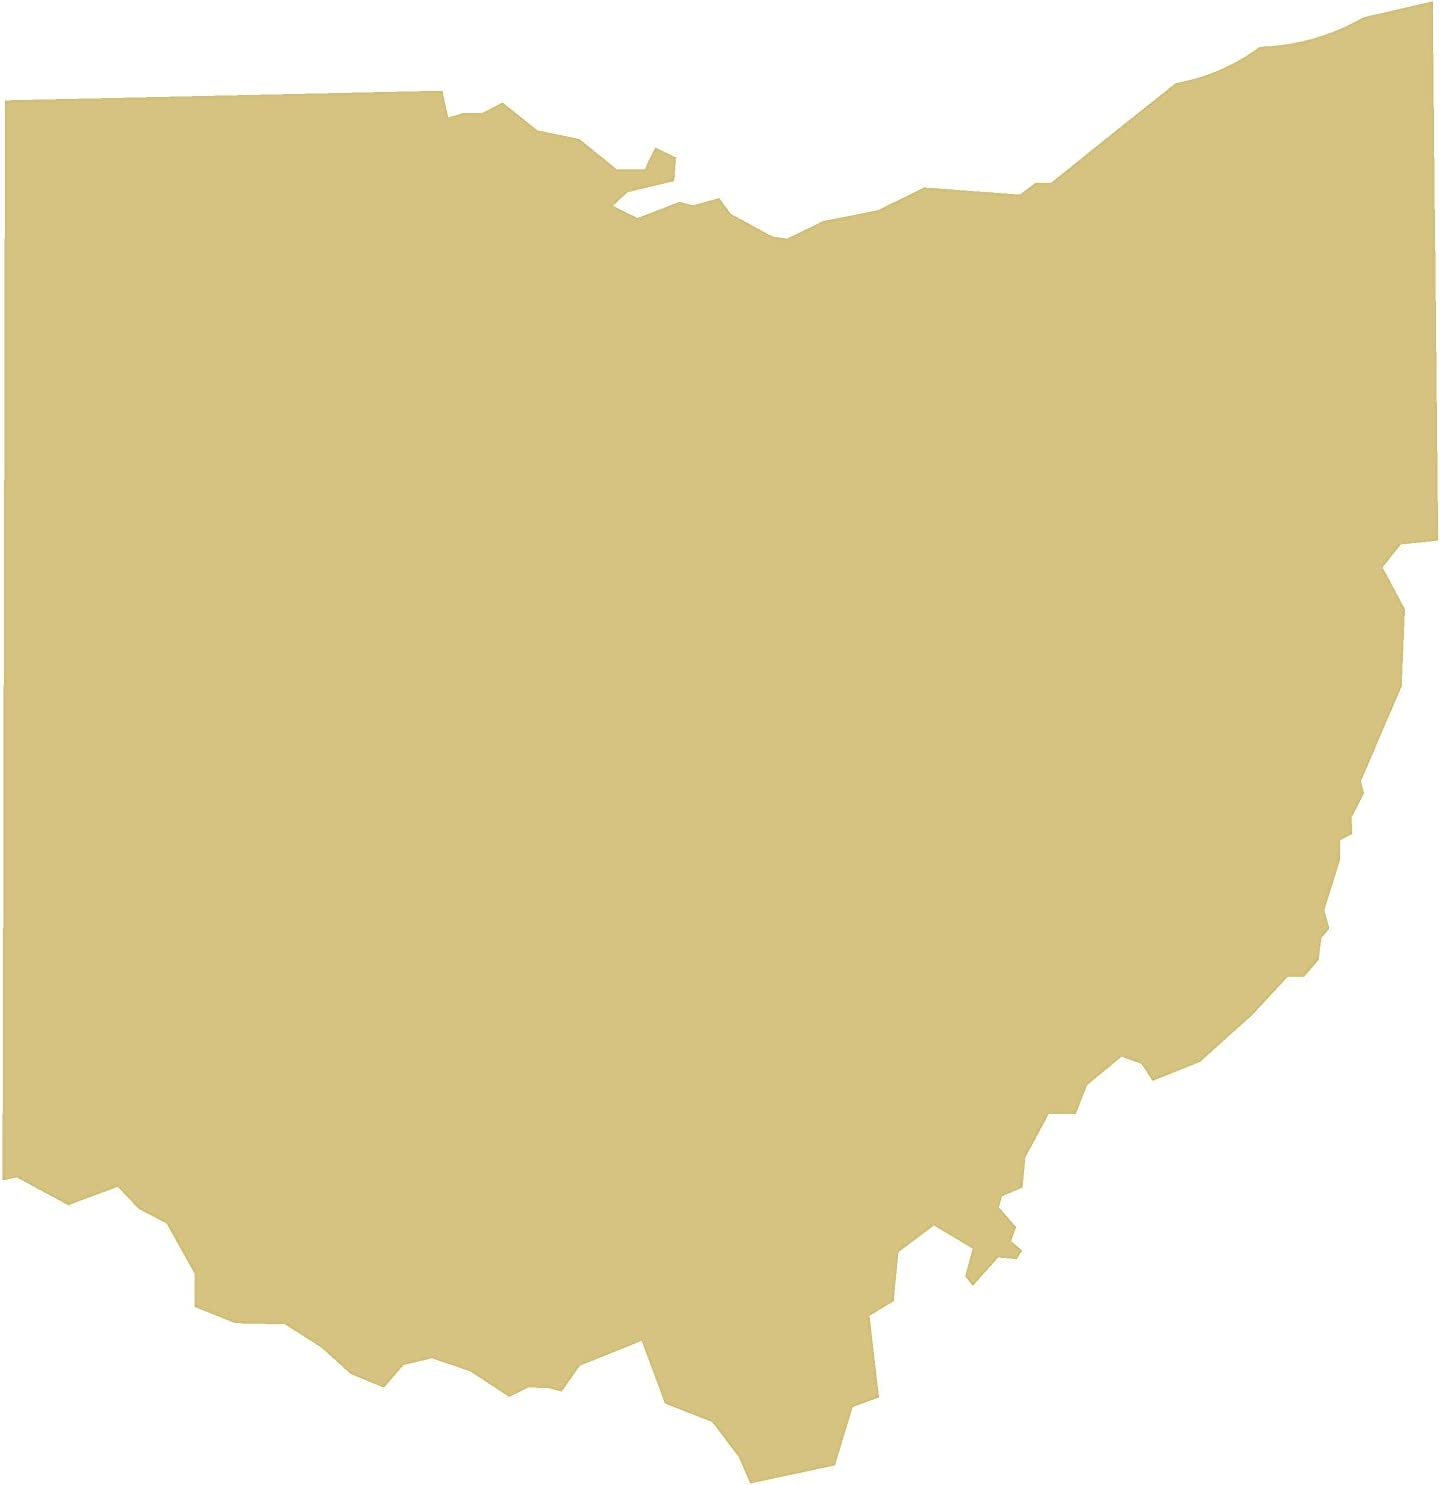 States Cutout Unfinished Wood United States Geography School Decor Door Hanger MDF Shape Canvas Style 1 (18